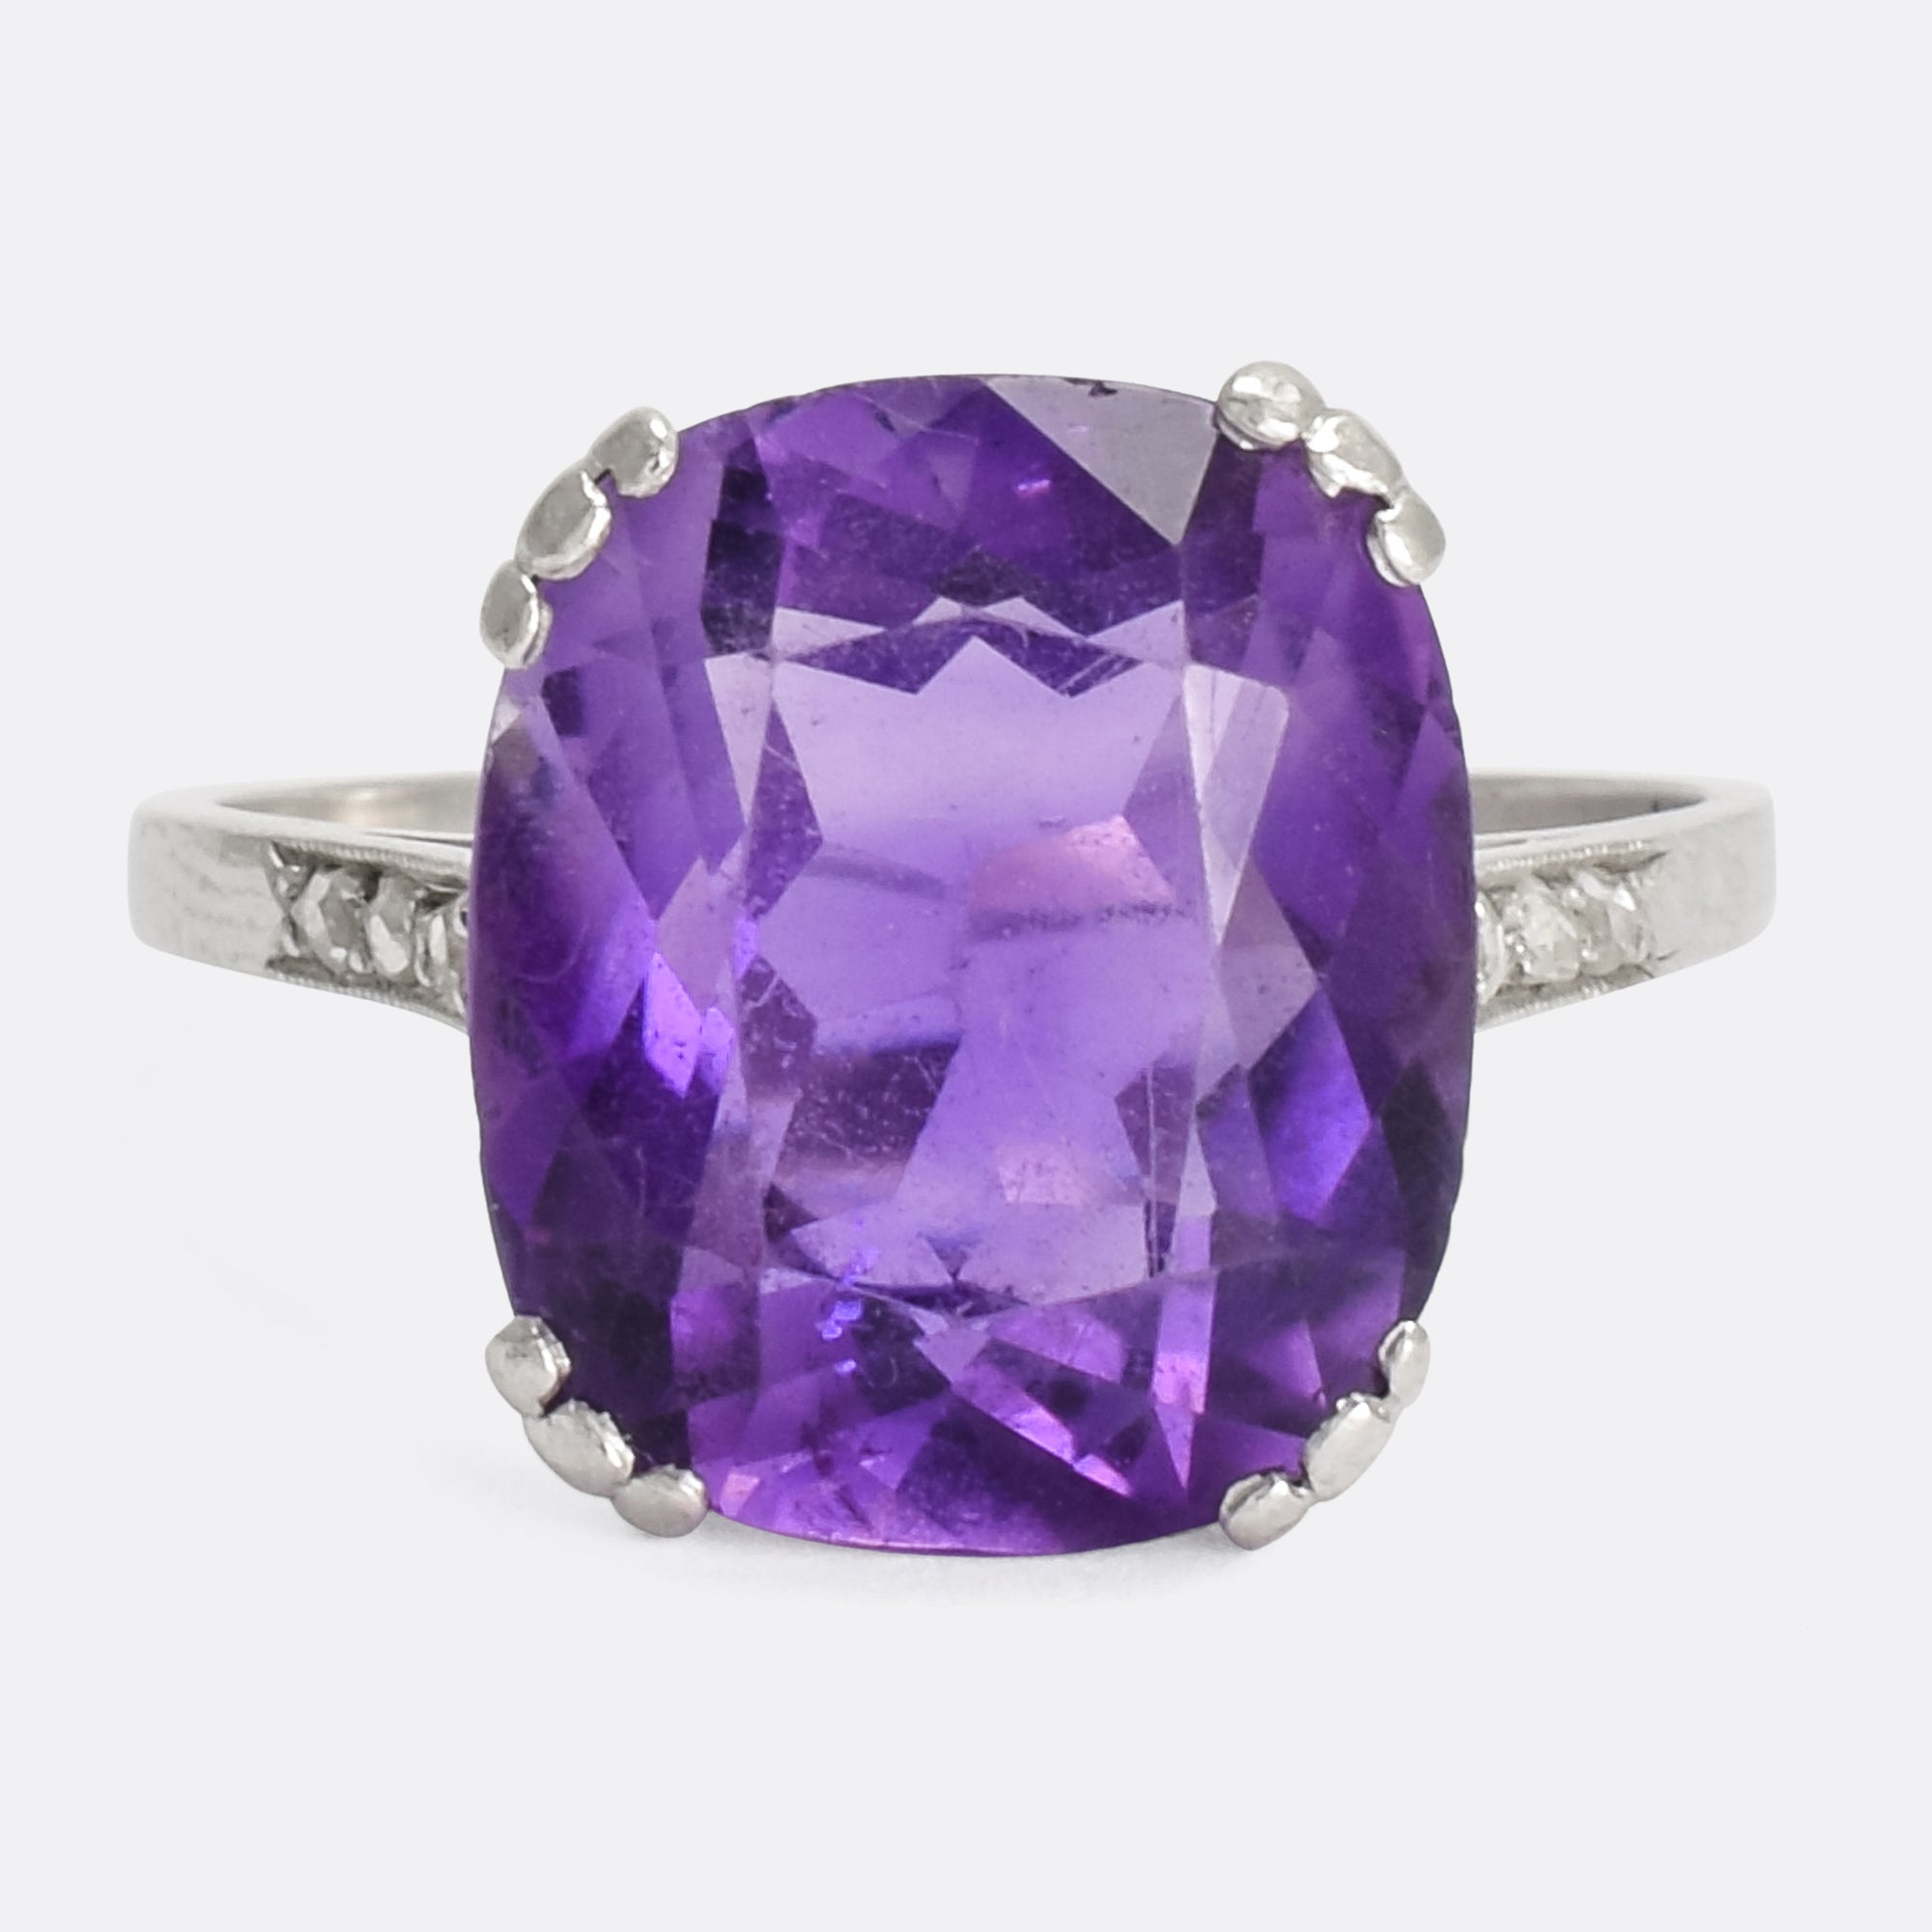 rings shing jupiter on collections tf diamond ring categories tags gemstone gold oval color engagement amethyst amethist product inc white jewelry sku